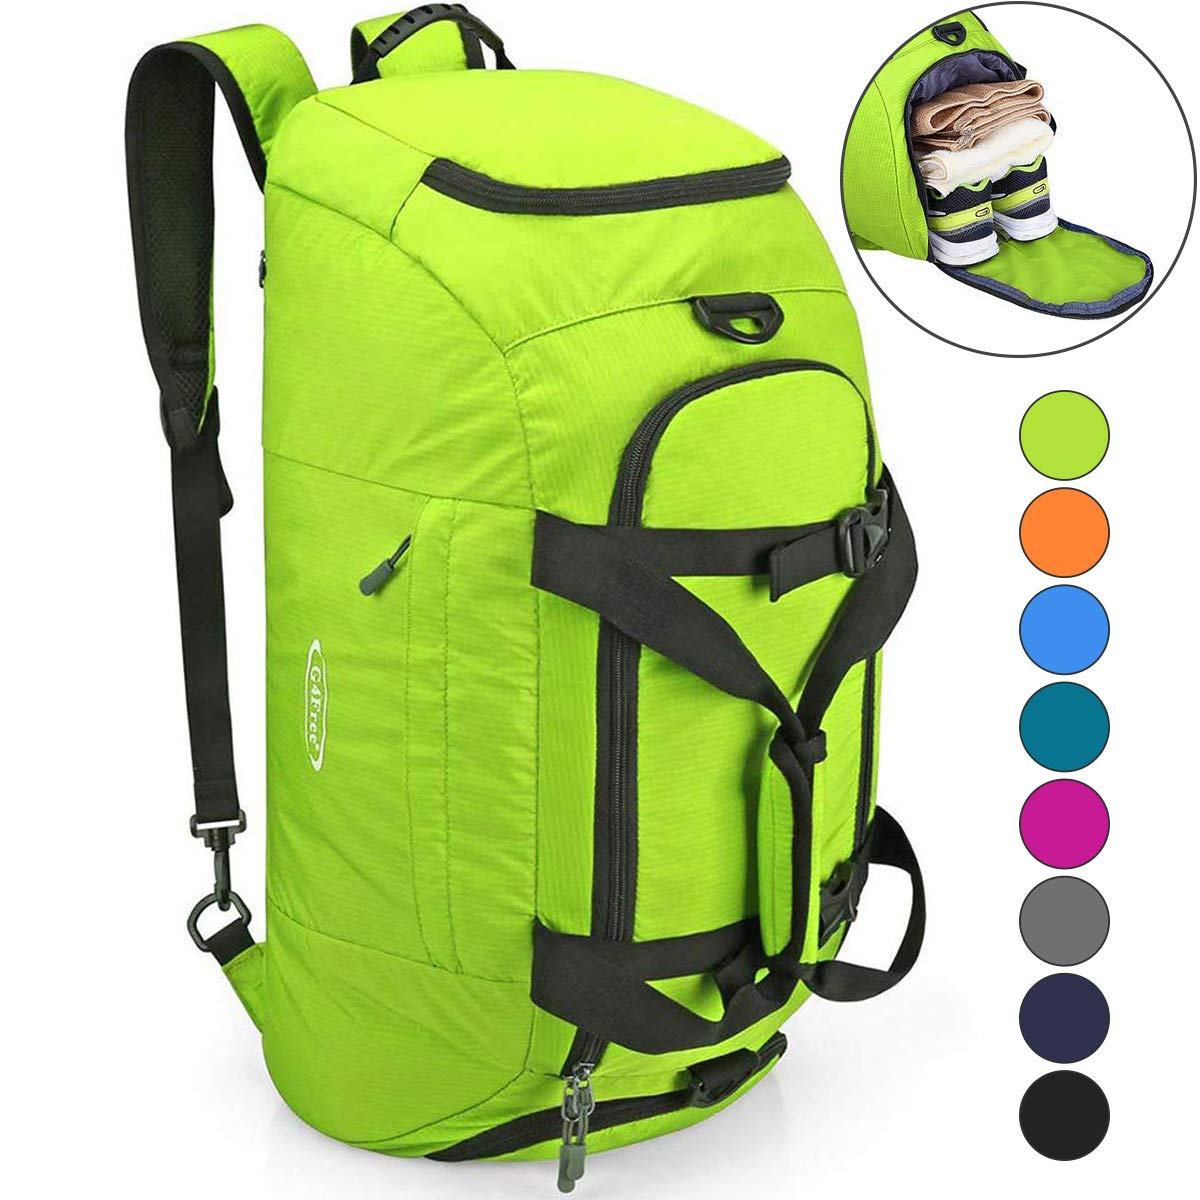 G4Free 3-Way Travel Duffel Backpack Luggage Gym Sports Bag with Shoe Compartment 40L